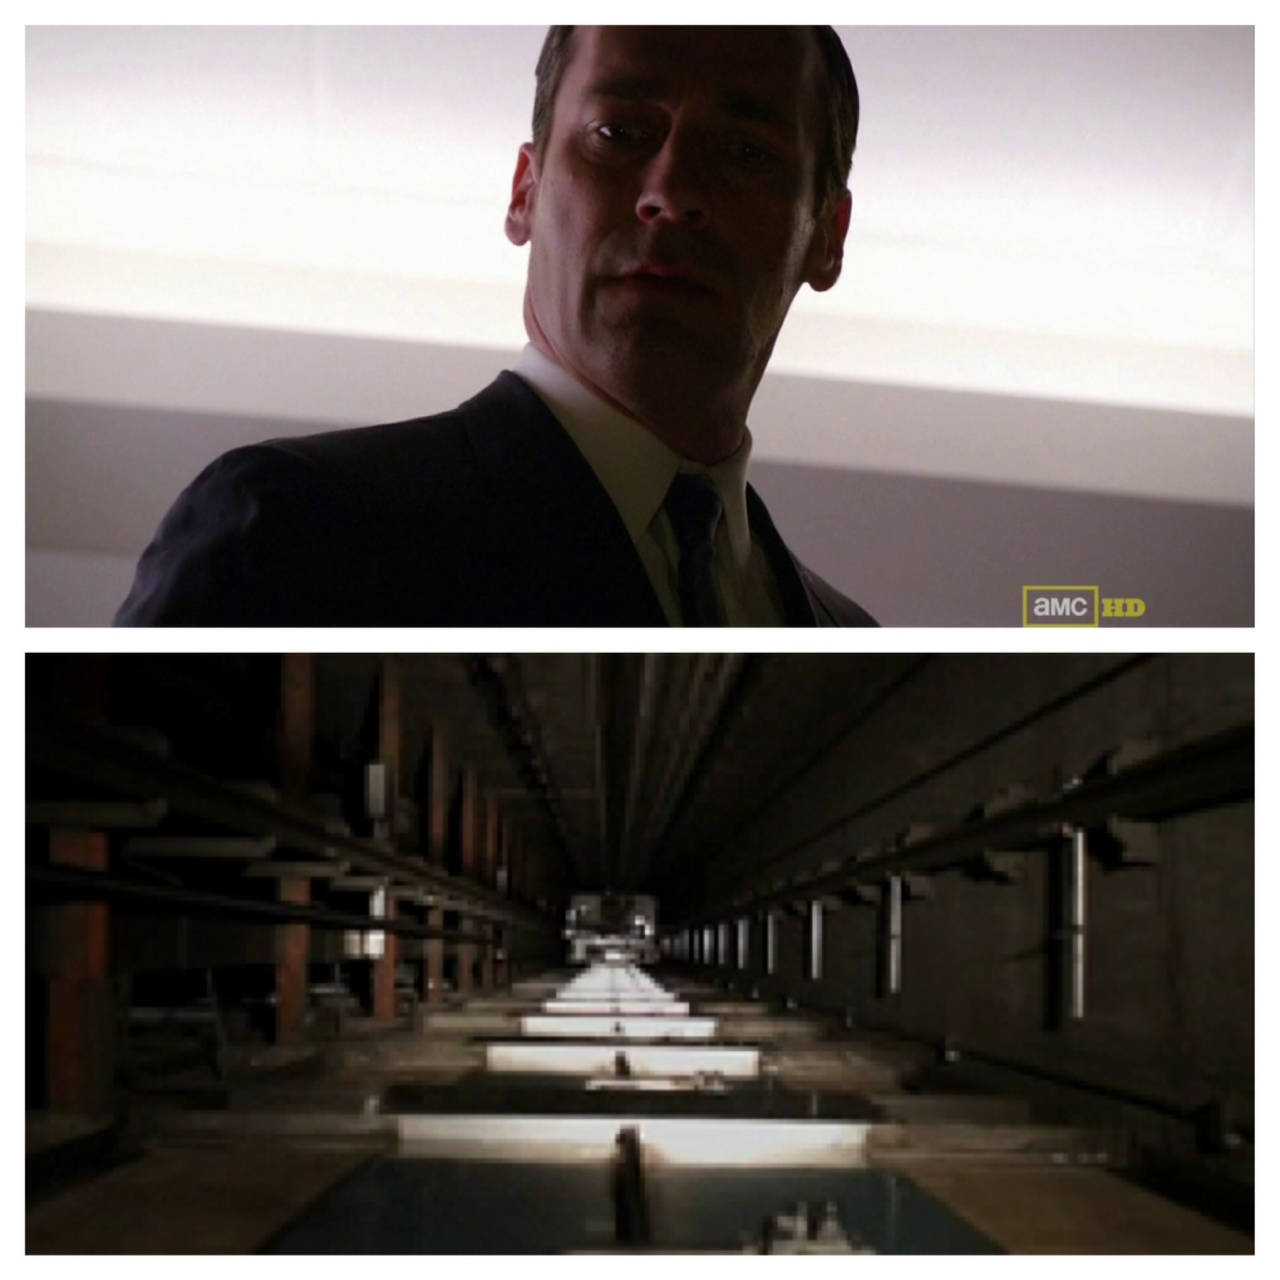 Frames from Mad Men Episode 5.8, 'Lady Lazarus'